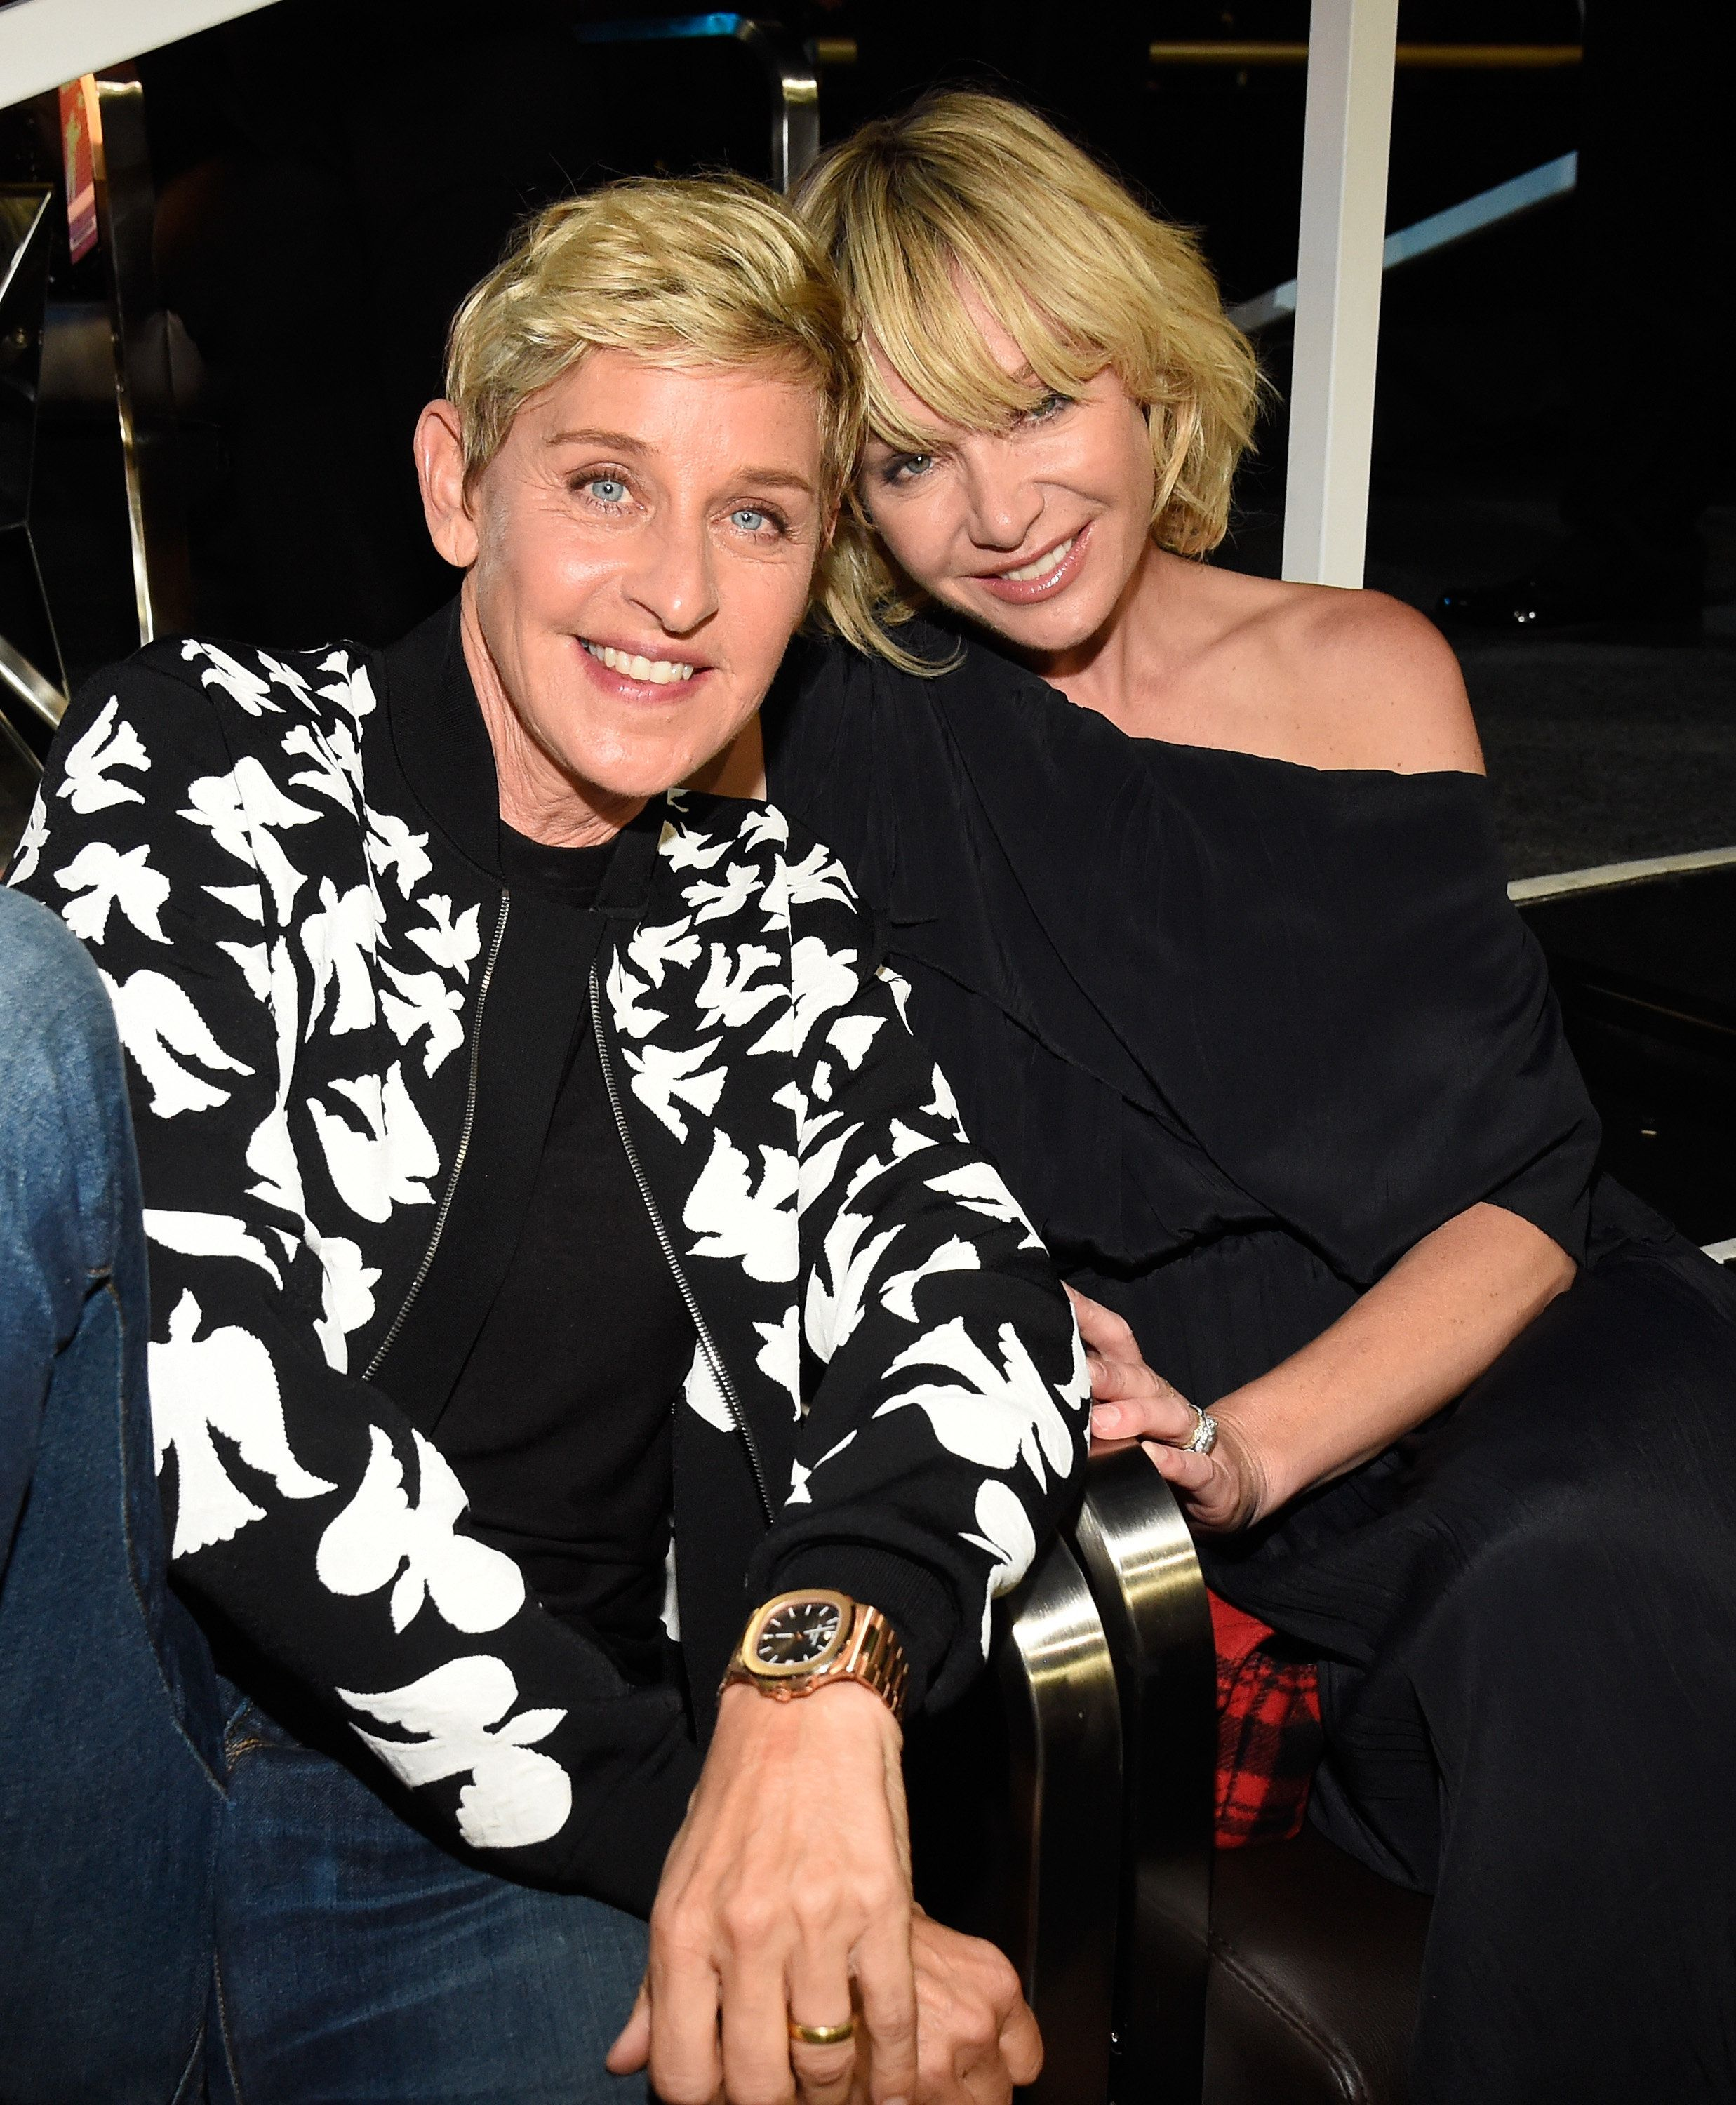 Ellen DeGeneres and Portia de Rossi attend the 2017 MTV Video Music Awards on August 27, 2017 in Inglewood, California.